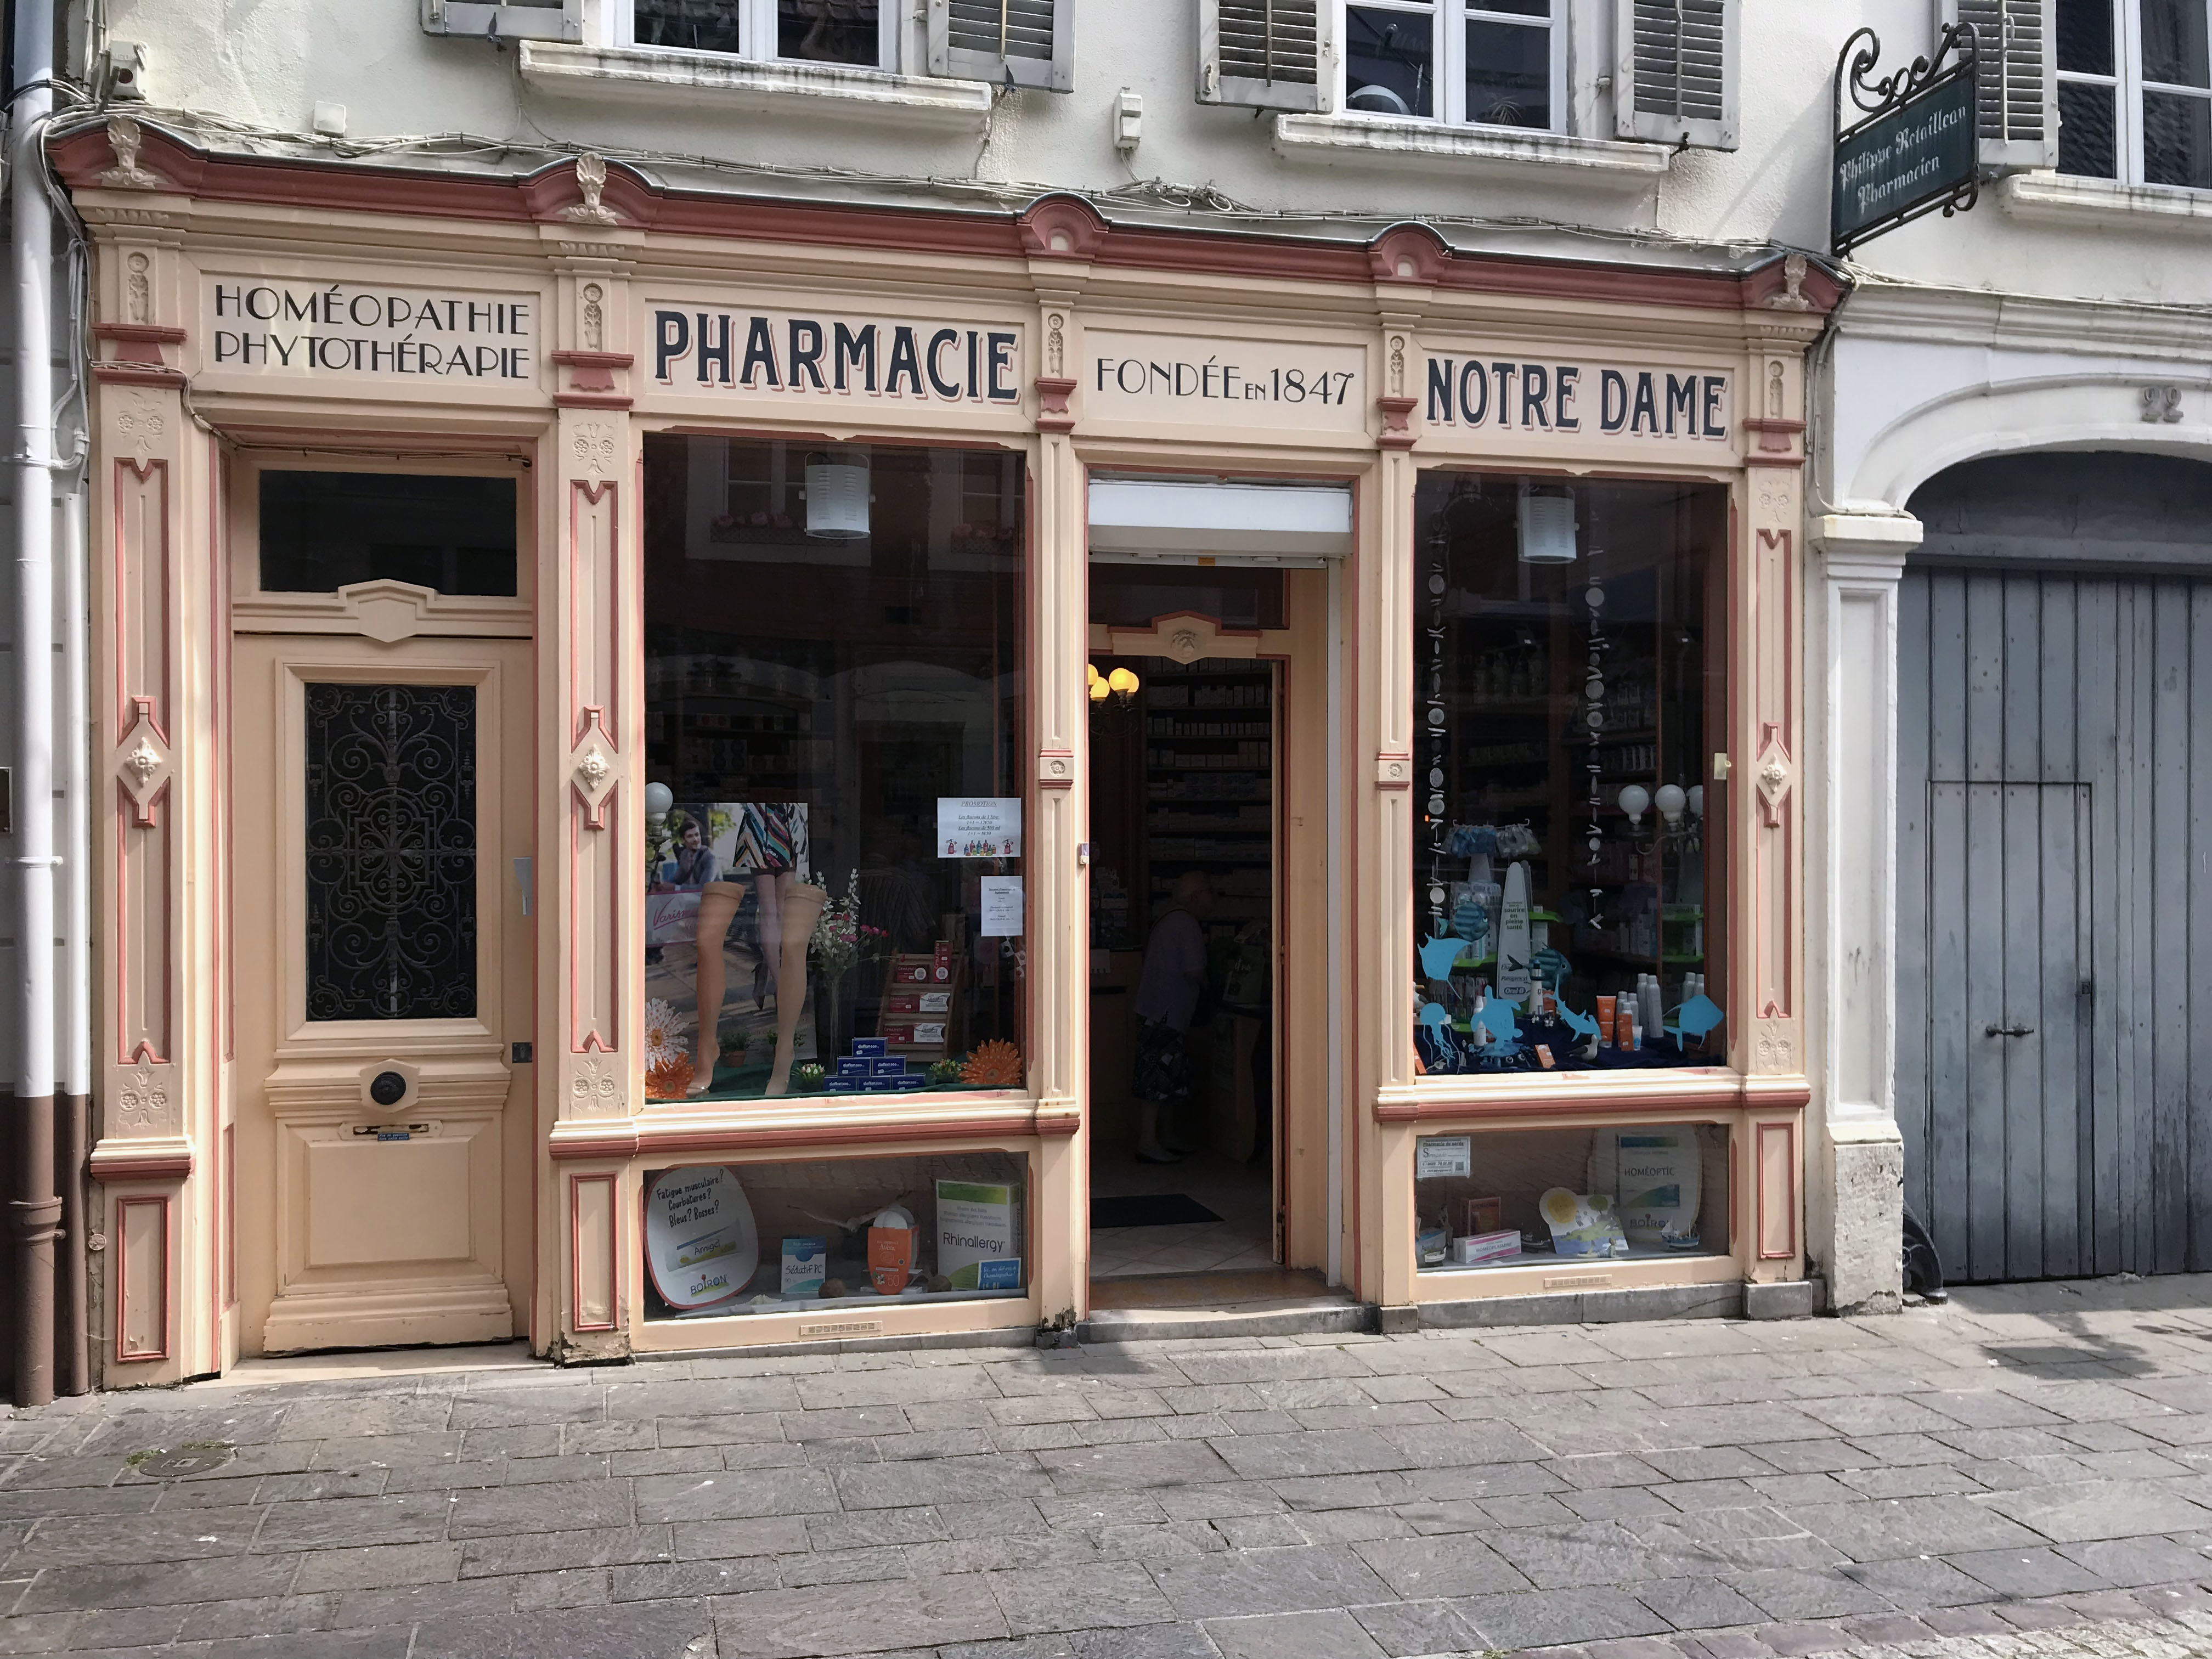 Pharmacie in Boulogne sur meer